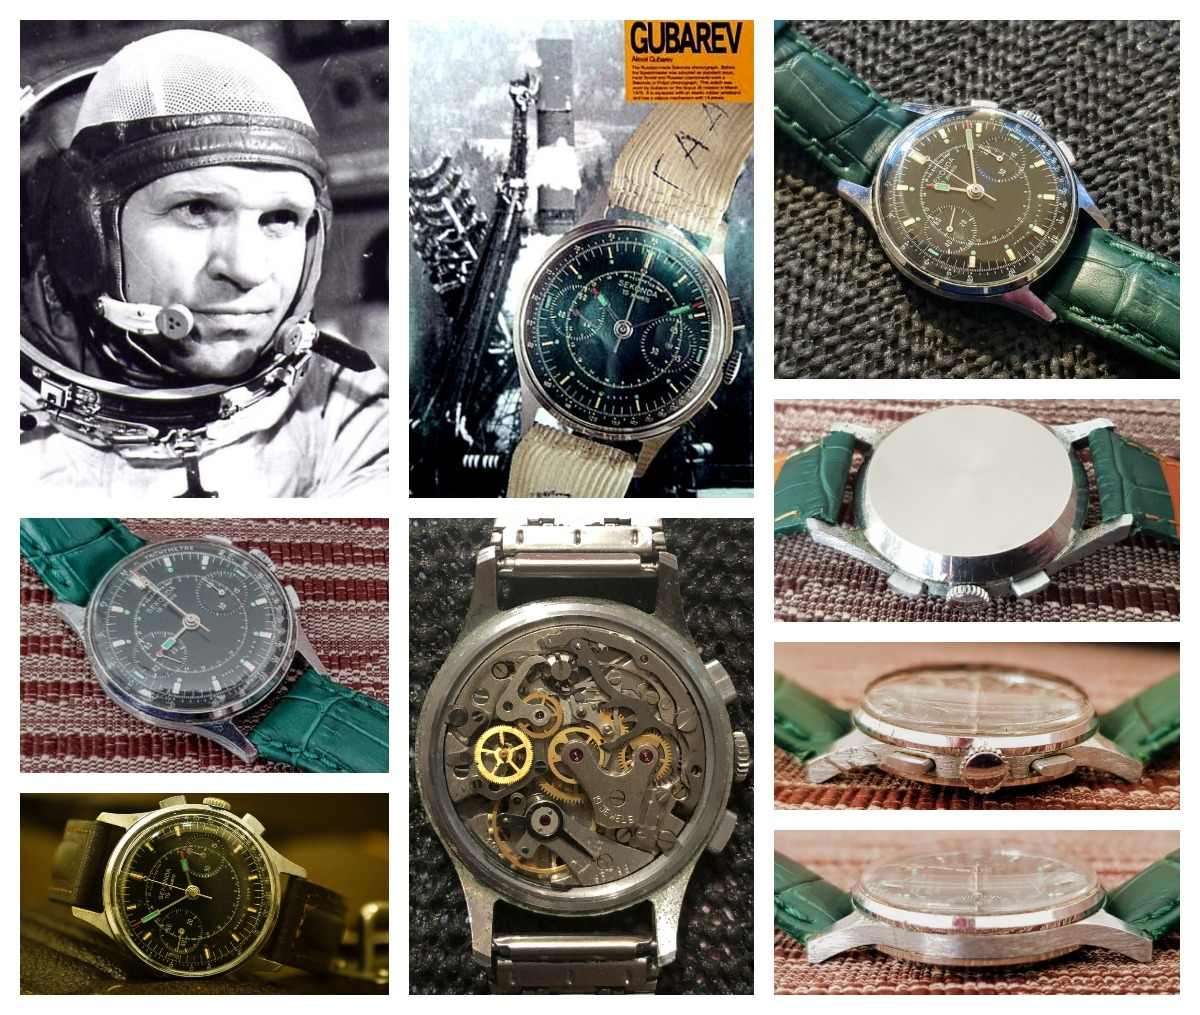 Gubarev wore a black Strela - branded Sekonda - Chronograph watch with the Poljot 3017 hand-wound movement during the Soyuz-28 mission. A great Omega Speedmaster alternative that is getting rare, but can still be found on eBay.